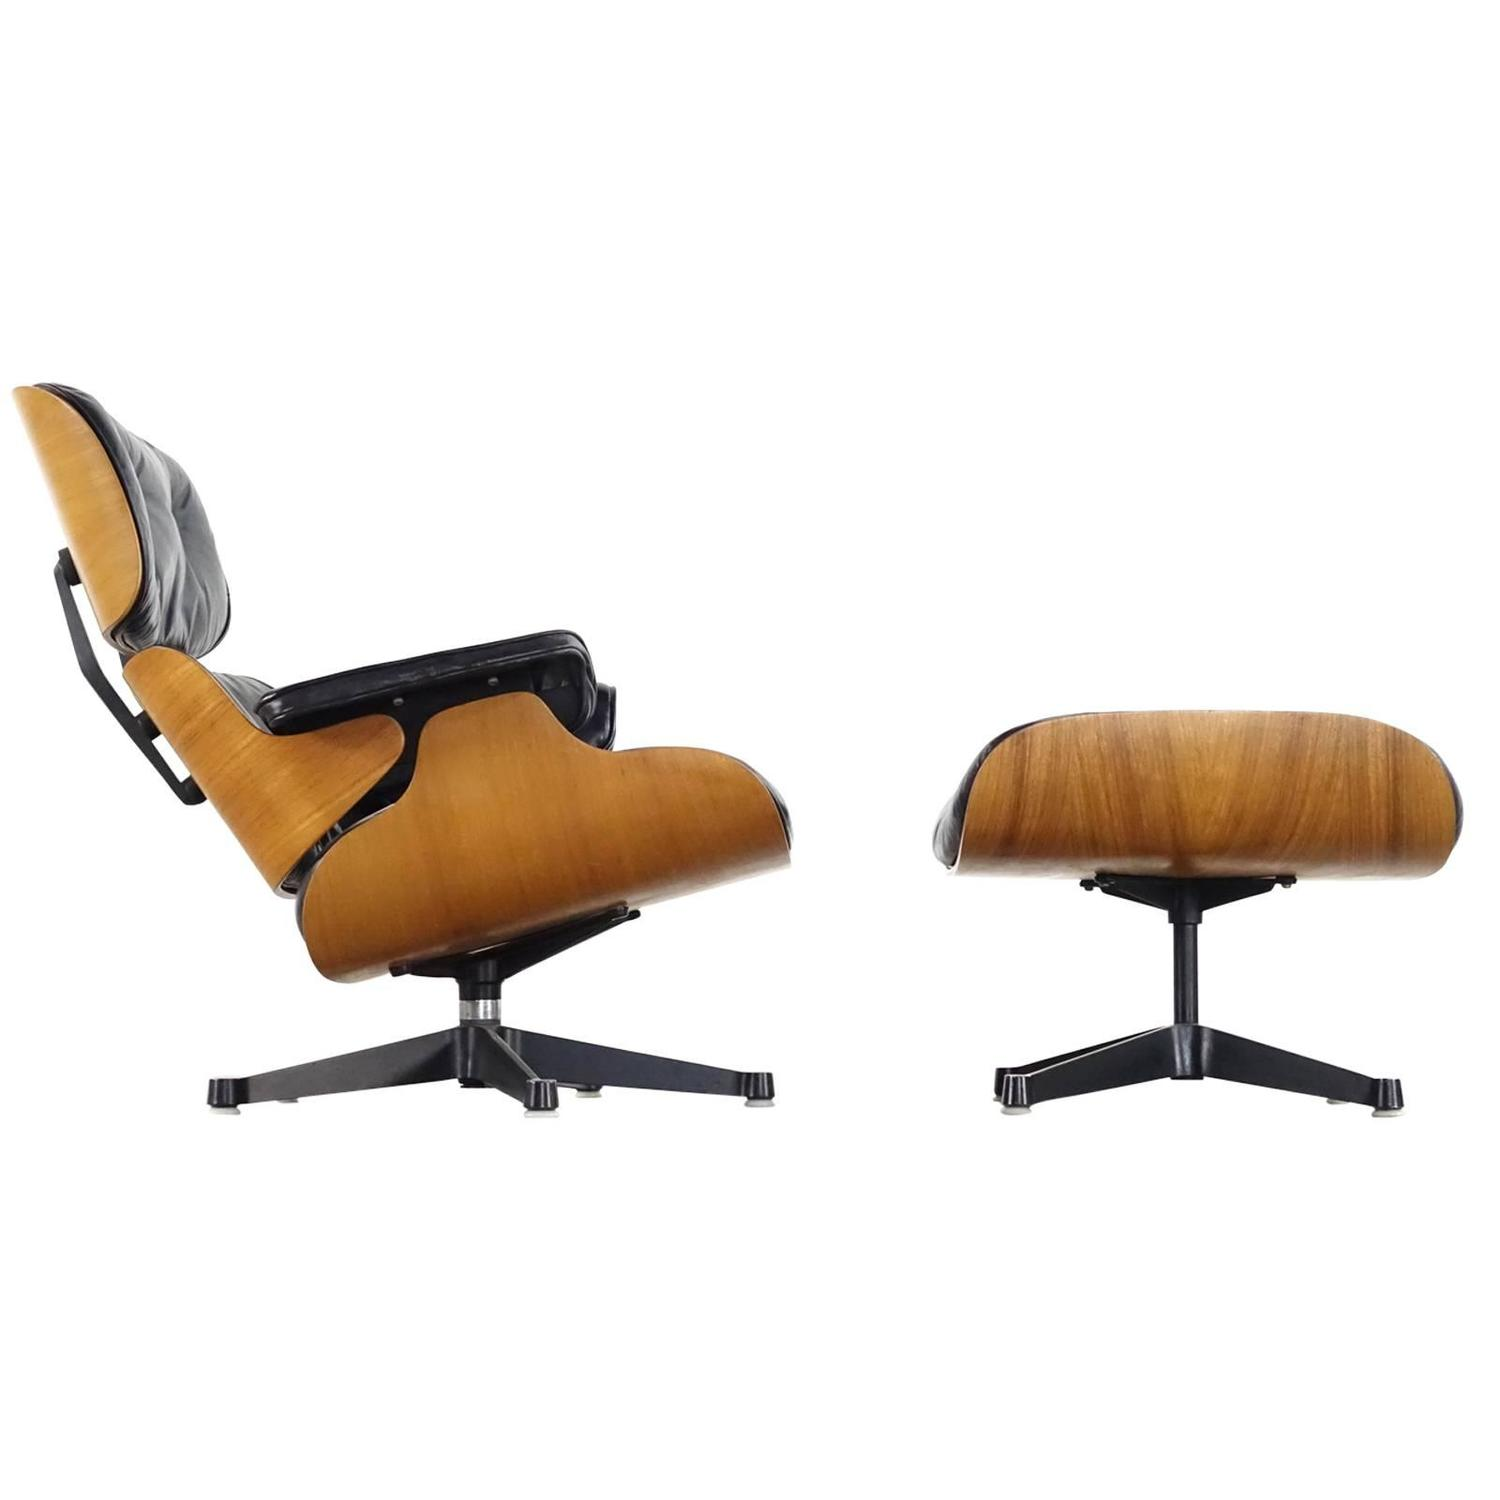 Very early charles and ray eames lounge chair from contura for Eames chair deutschland